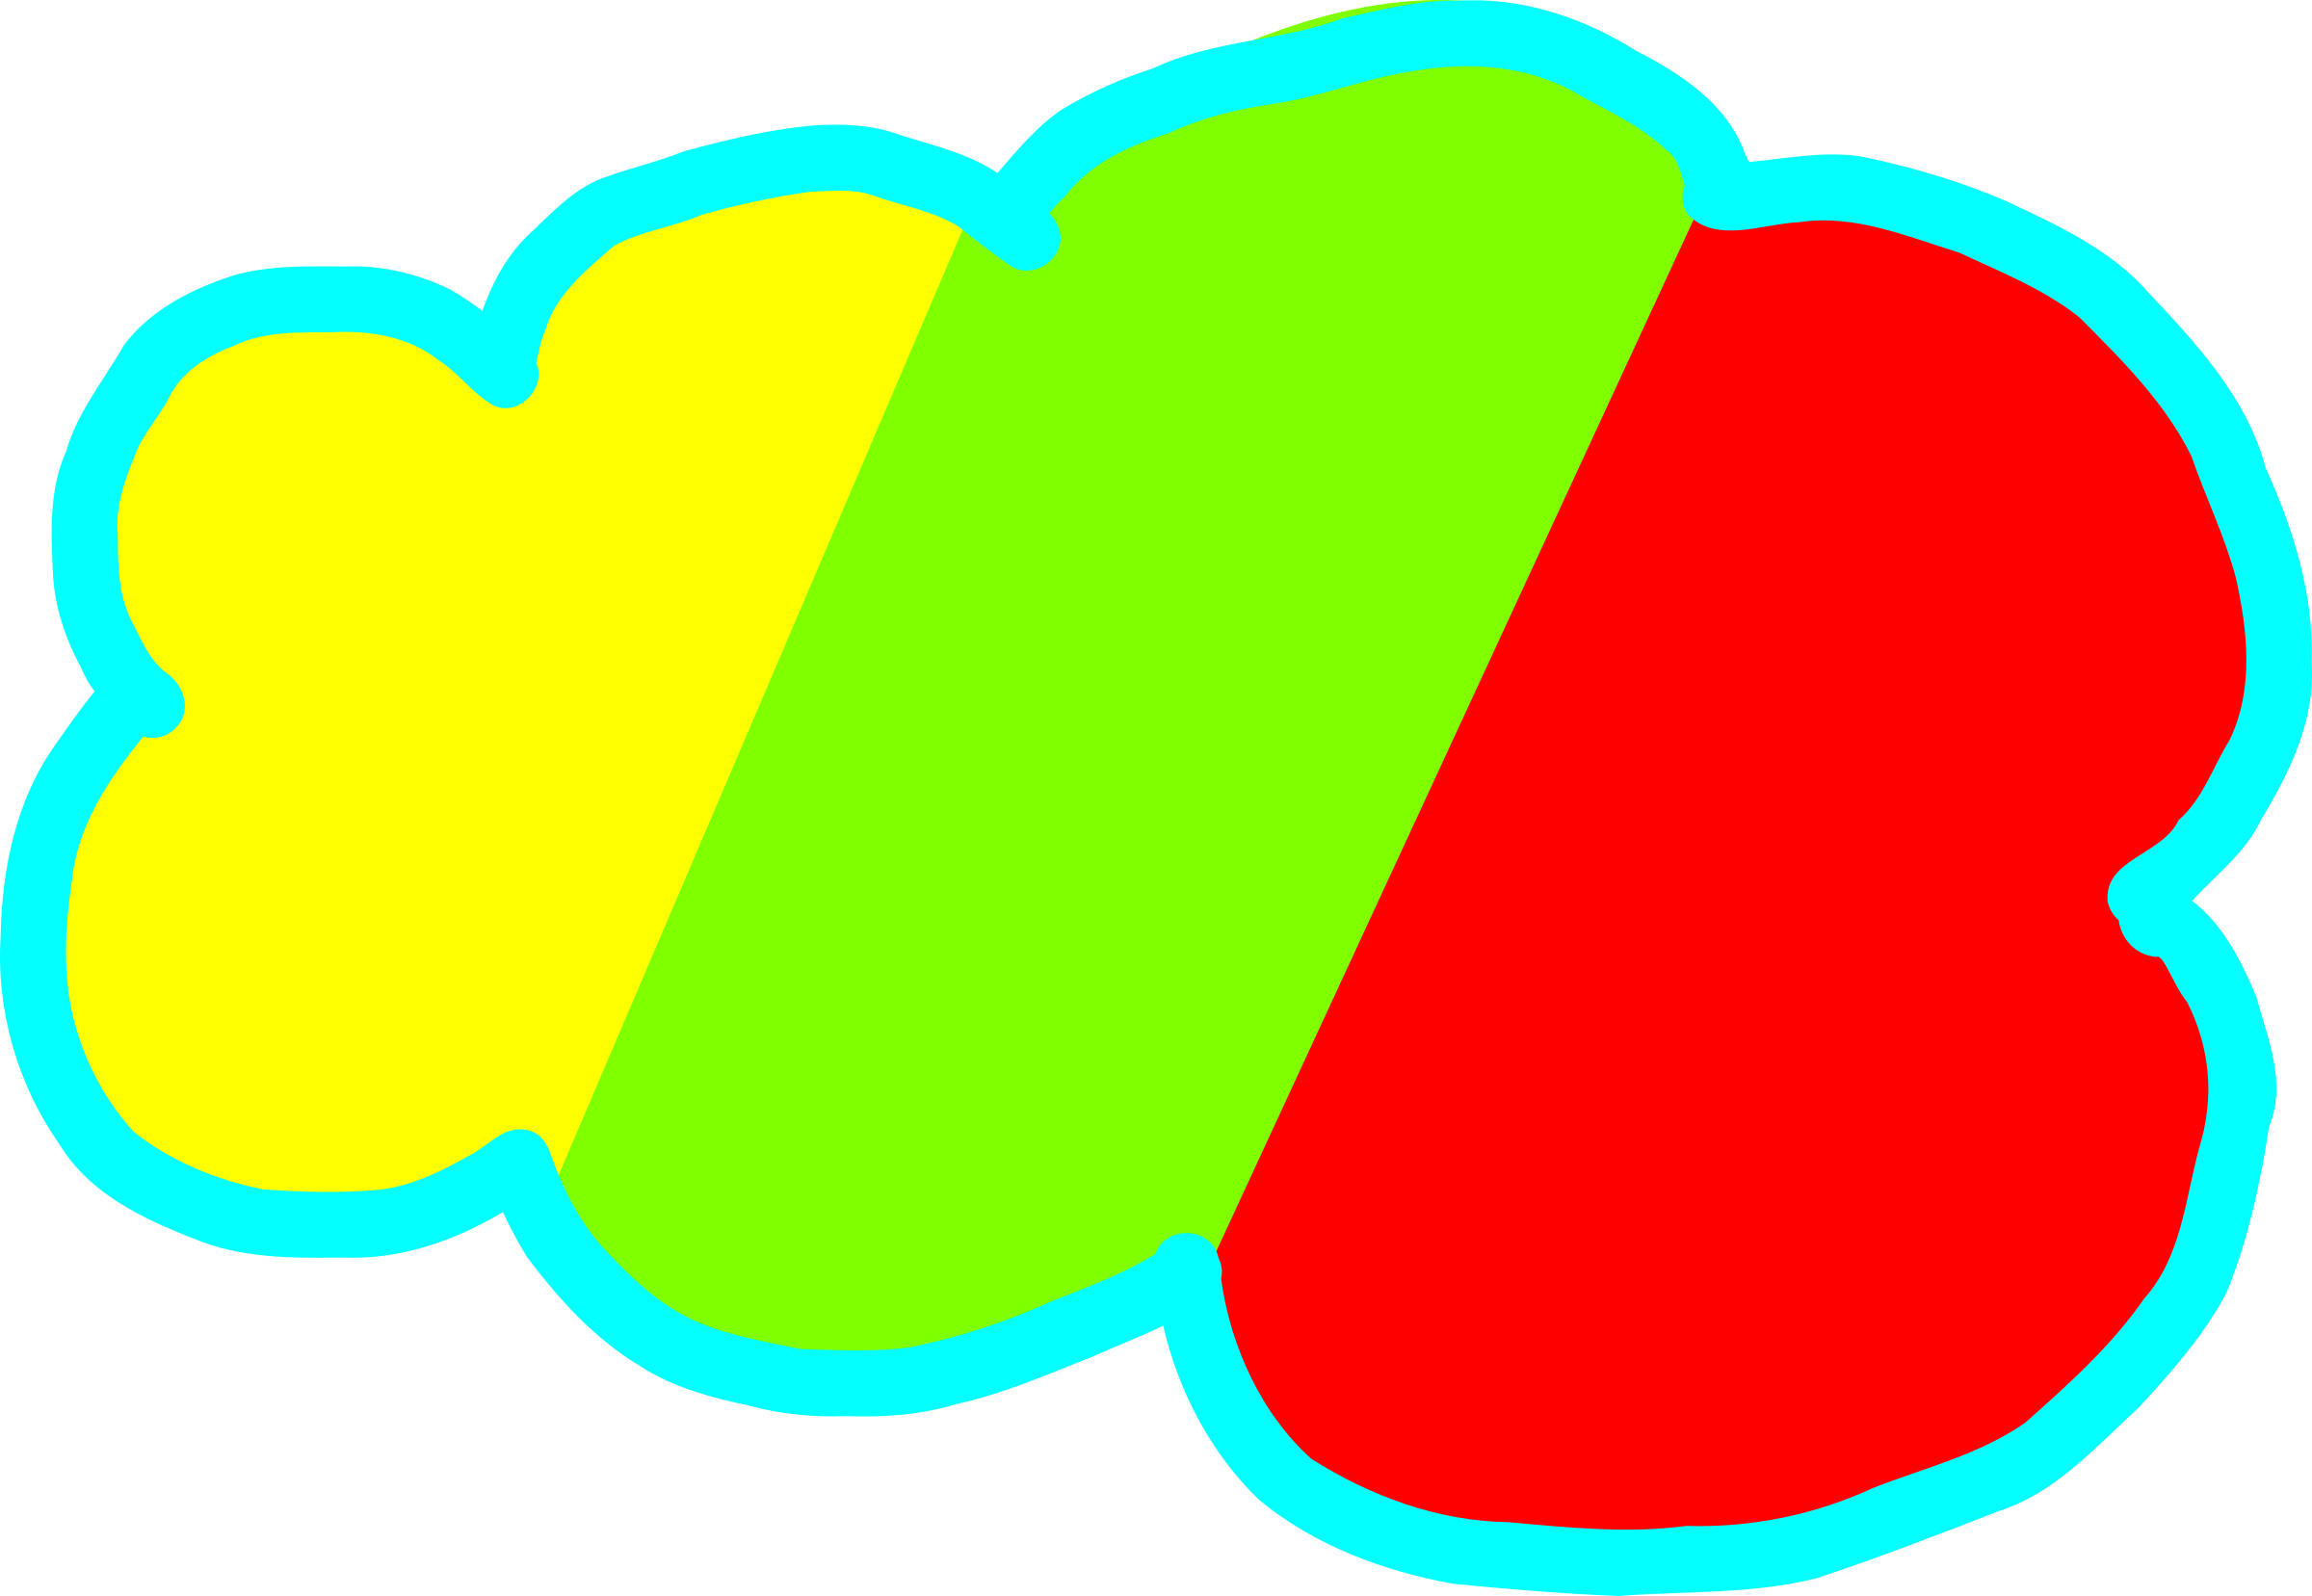 Clipart rainbow weather. Icon big image png